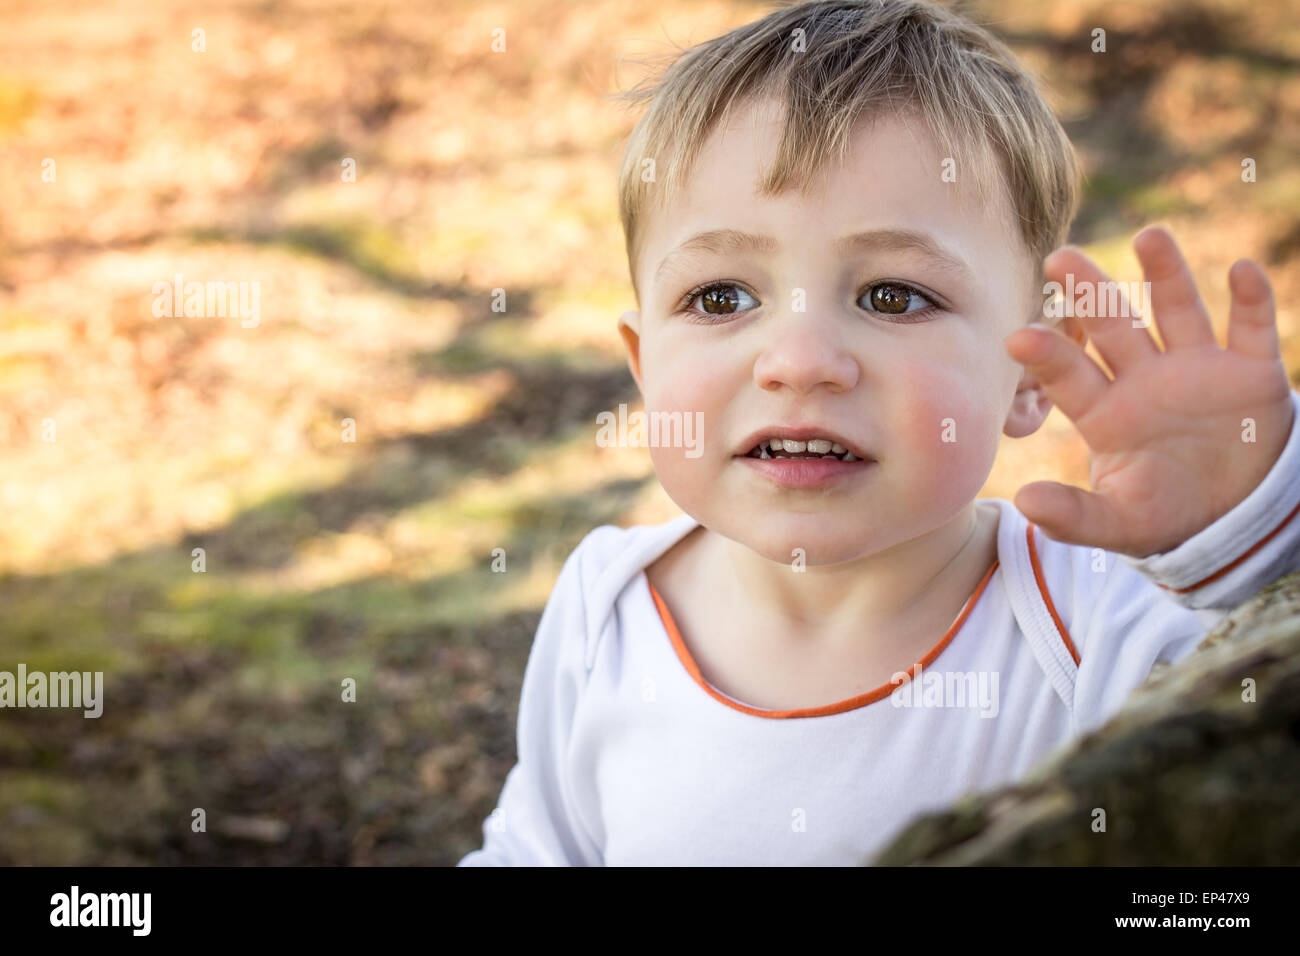 Portrait of a toddler waving - Stock Image